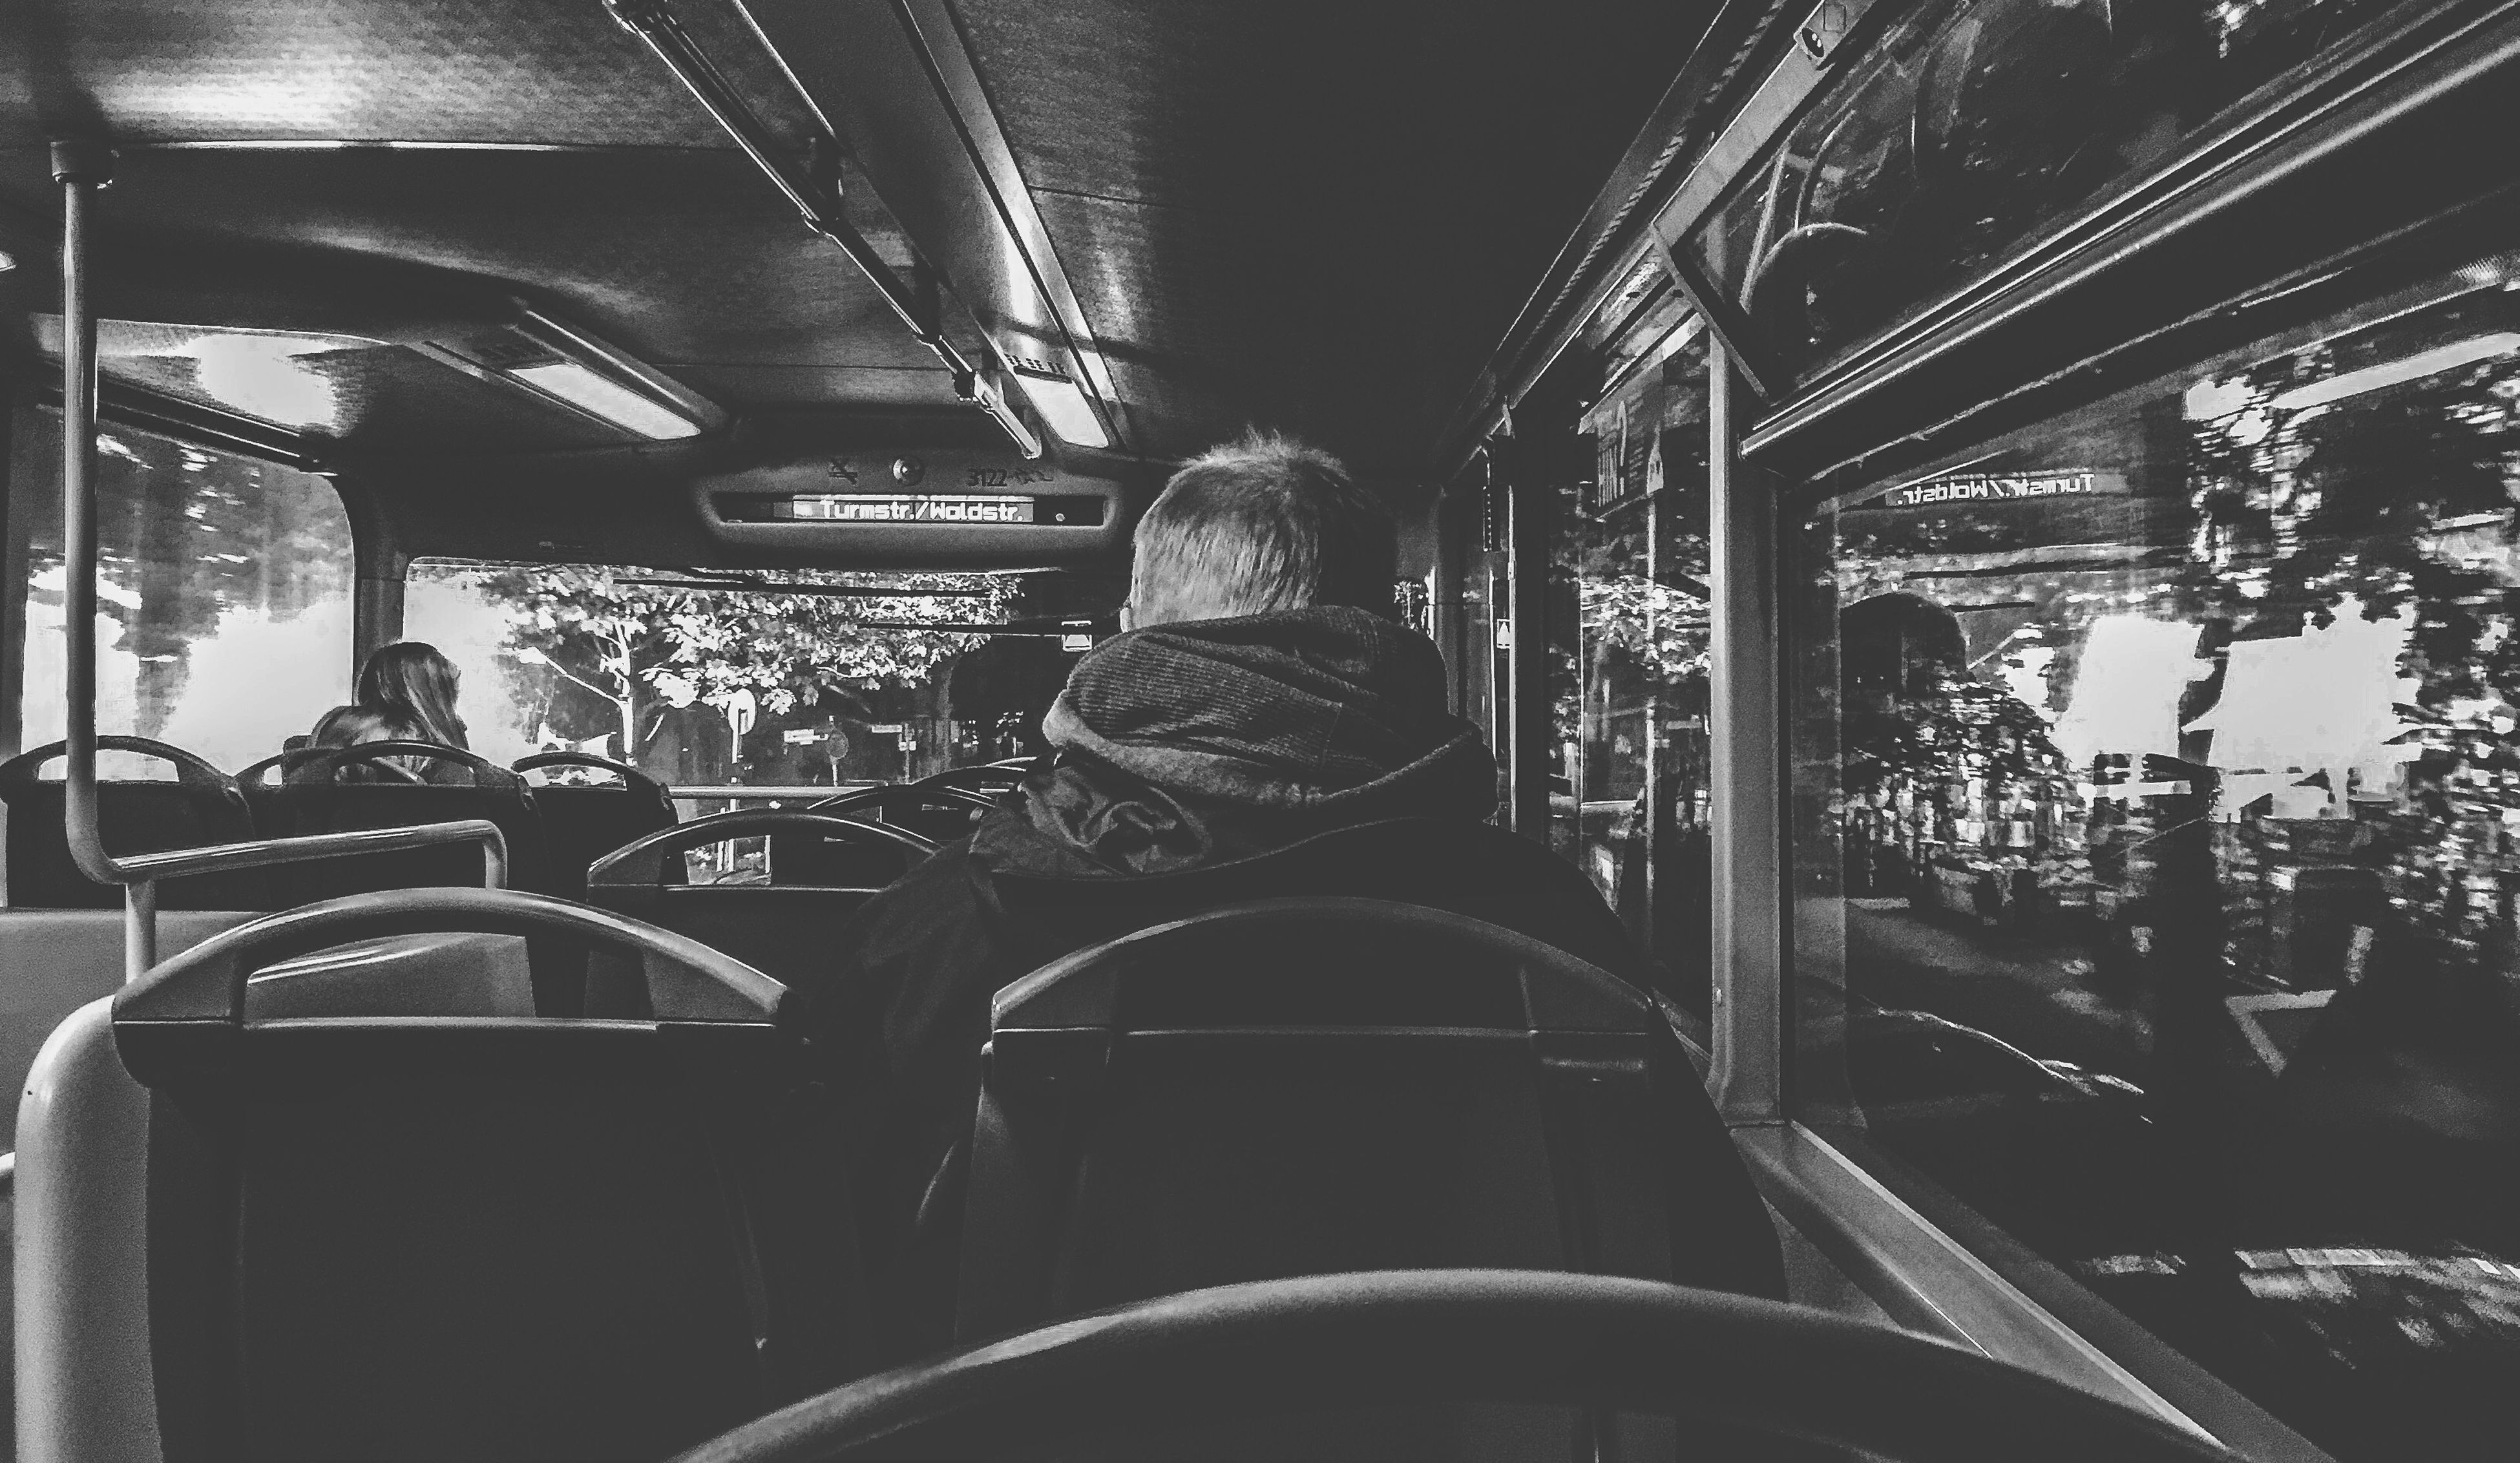 transportation, indoors, public transportation, architecture, built structure, illuminated, mode of transport, retail, land vehicle, store, bus, train - vehicle, incidental people, travel, rail transportation, vehicle interior, text, night, vehicle seat, city